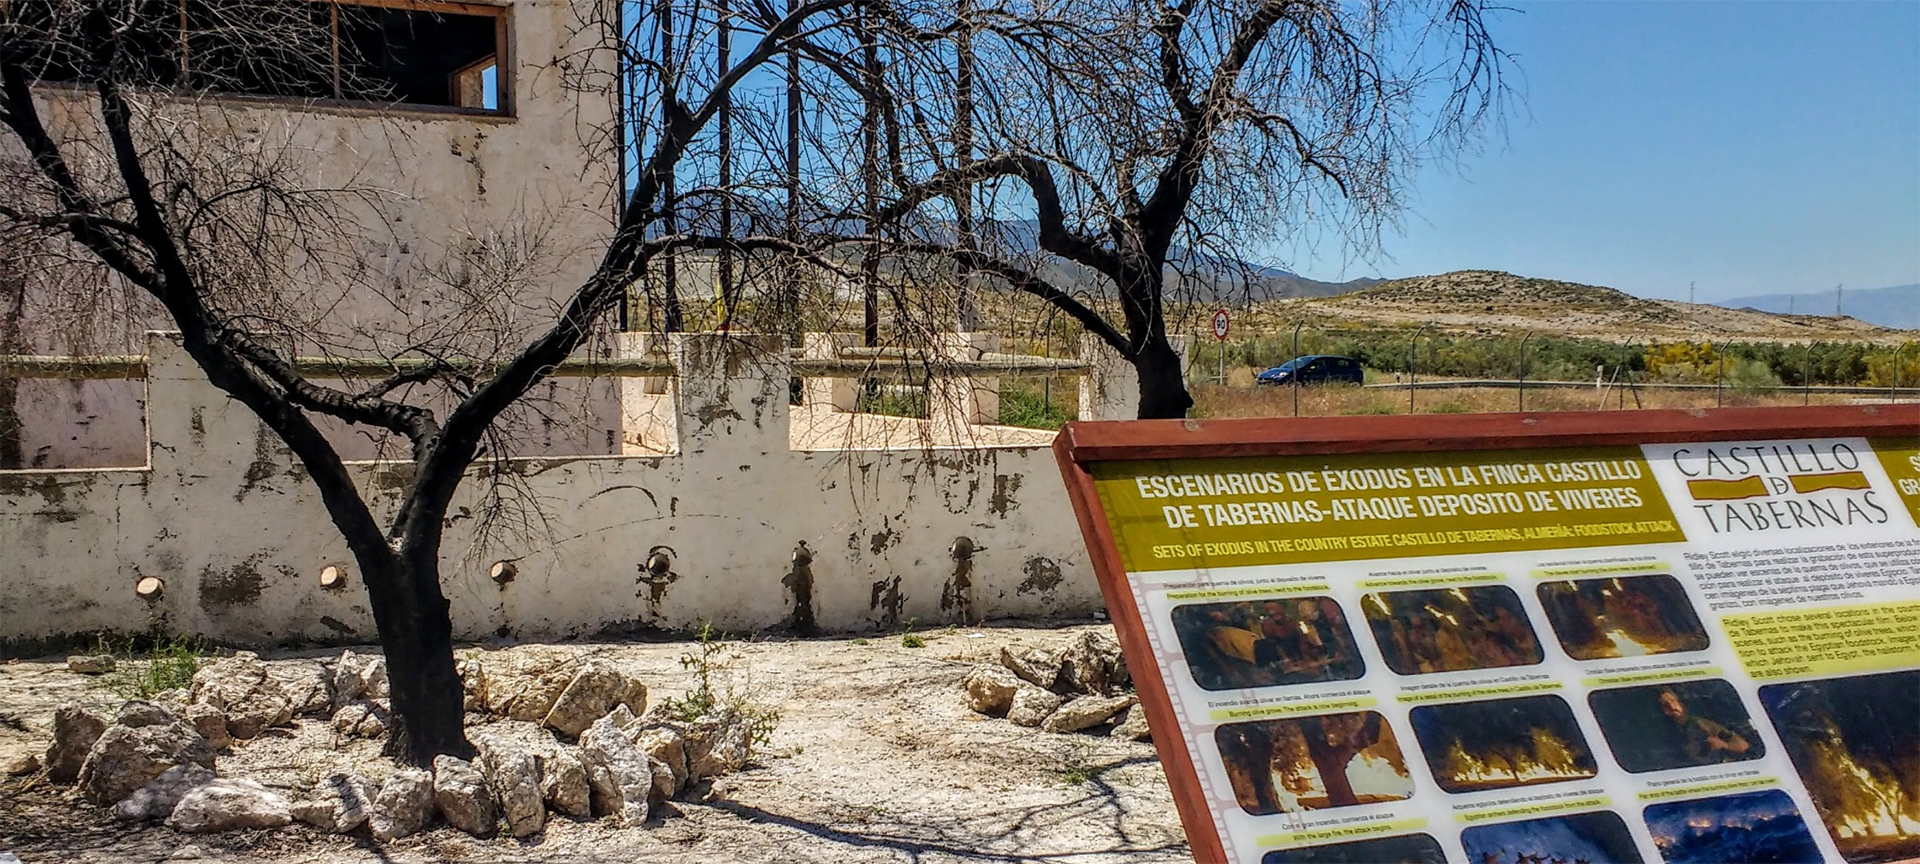 Two of the olive trees burned during the making of Exodus: Gods & Kings. Tabernas was made famous by films including the spaghetti westerns of the 60s and 70s. A Fistful of Dollars, and the Good, Bad and Ugly are just two of the many films made here.